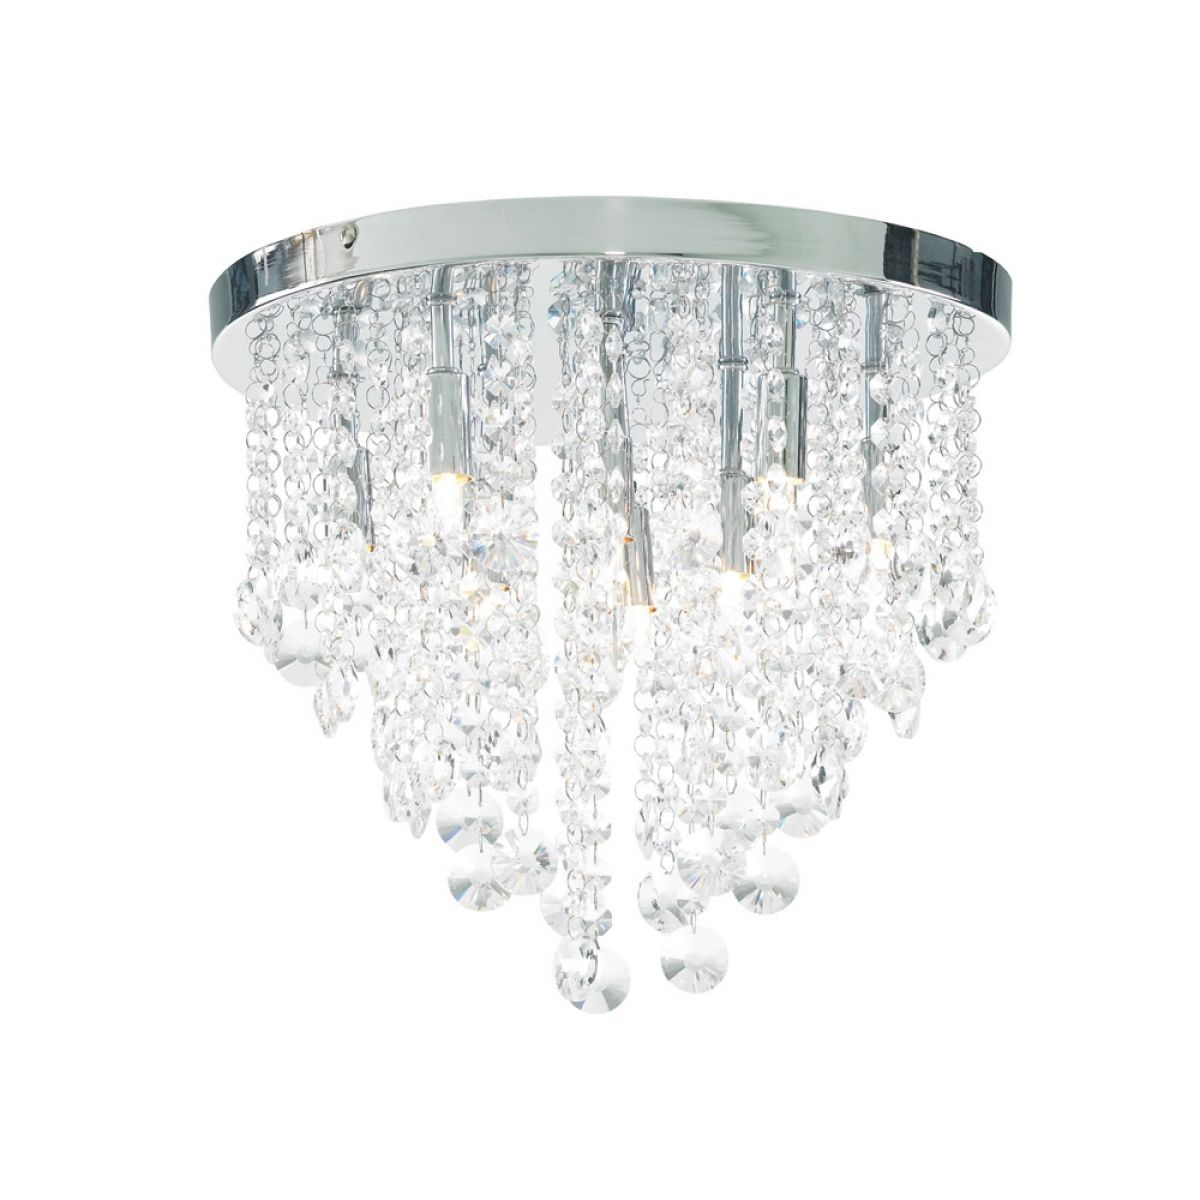 Forum Celeste 4 Light Ceiling Lamp